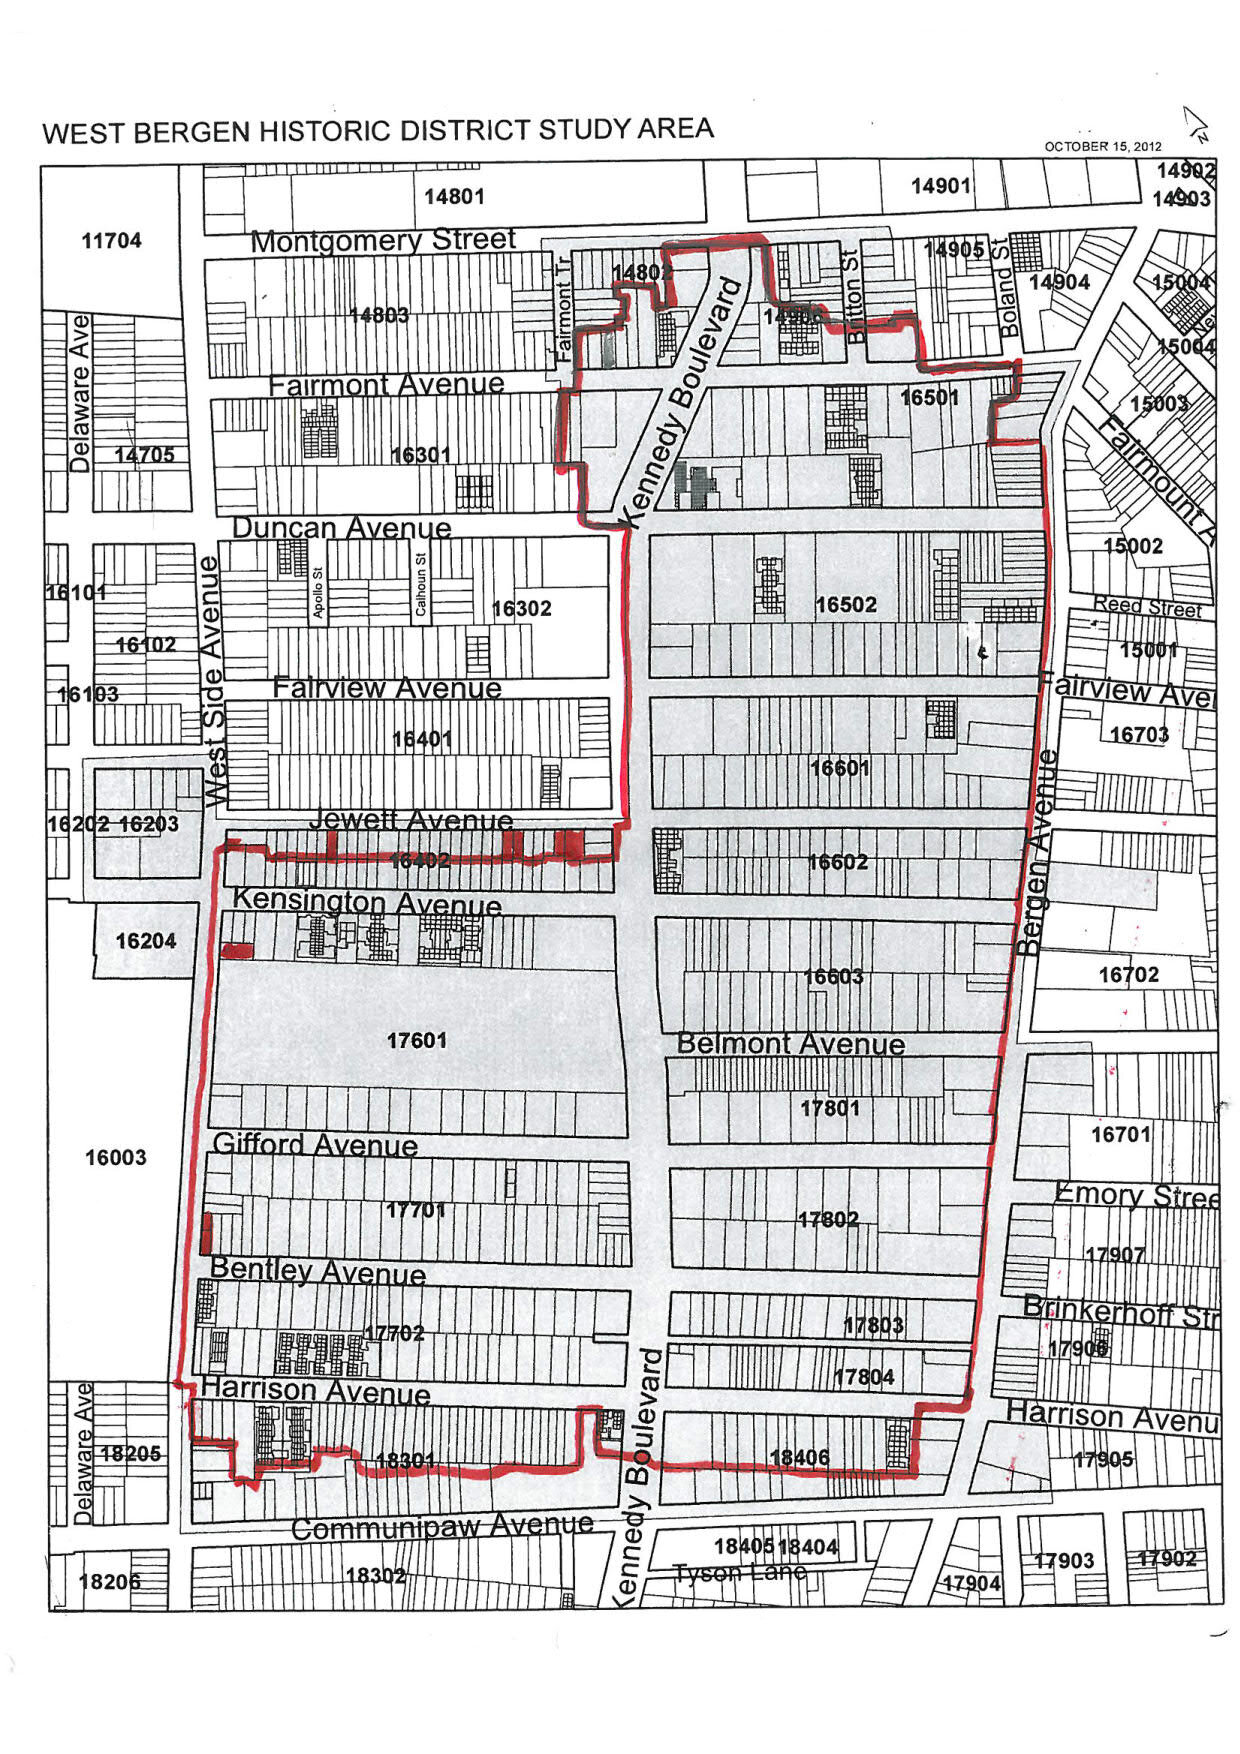 Lincoln Park HD Boundaries_Finalized 6.26.2013_1.jpg